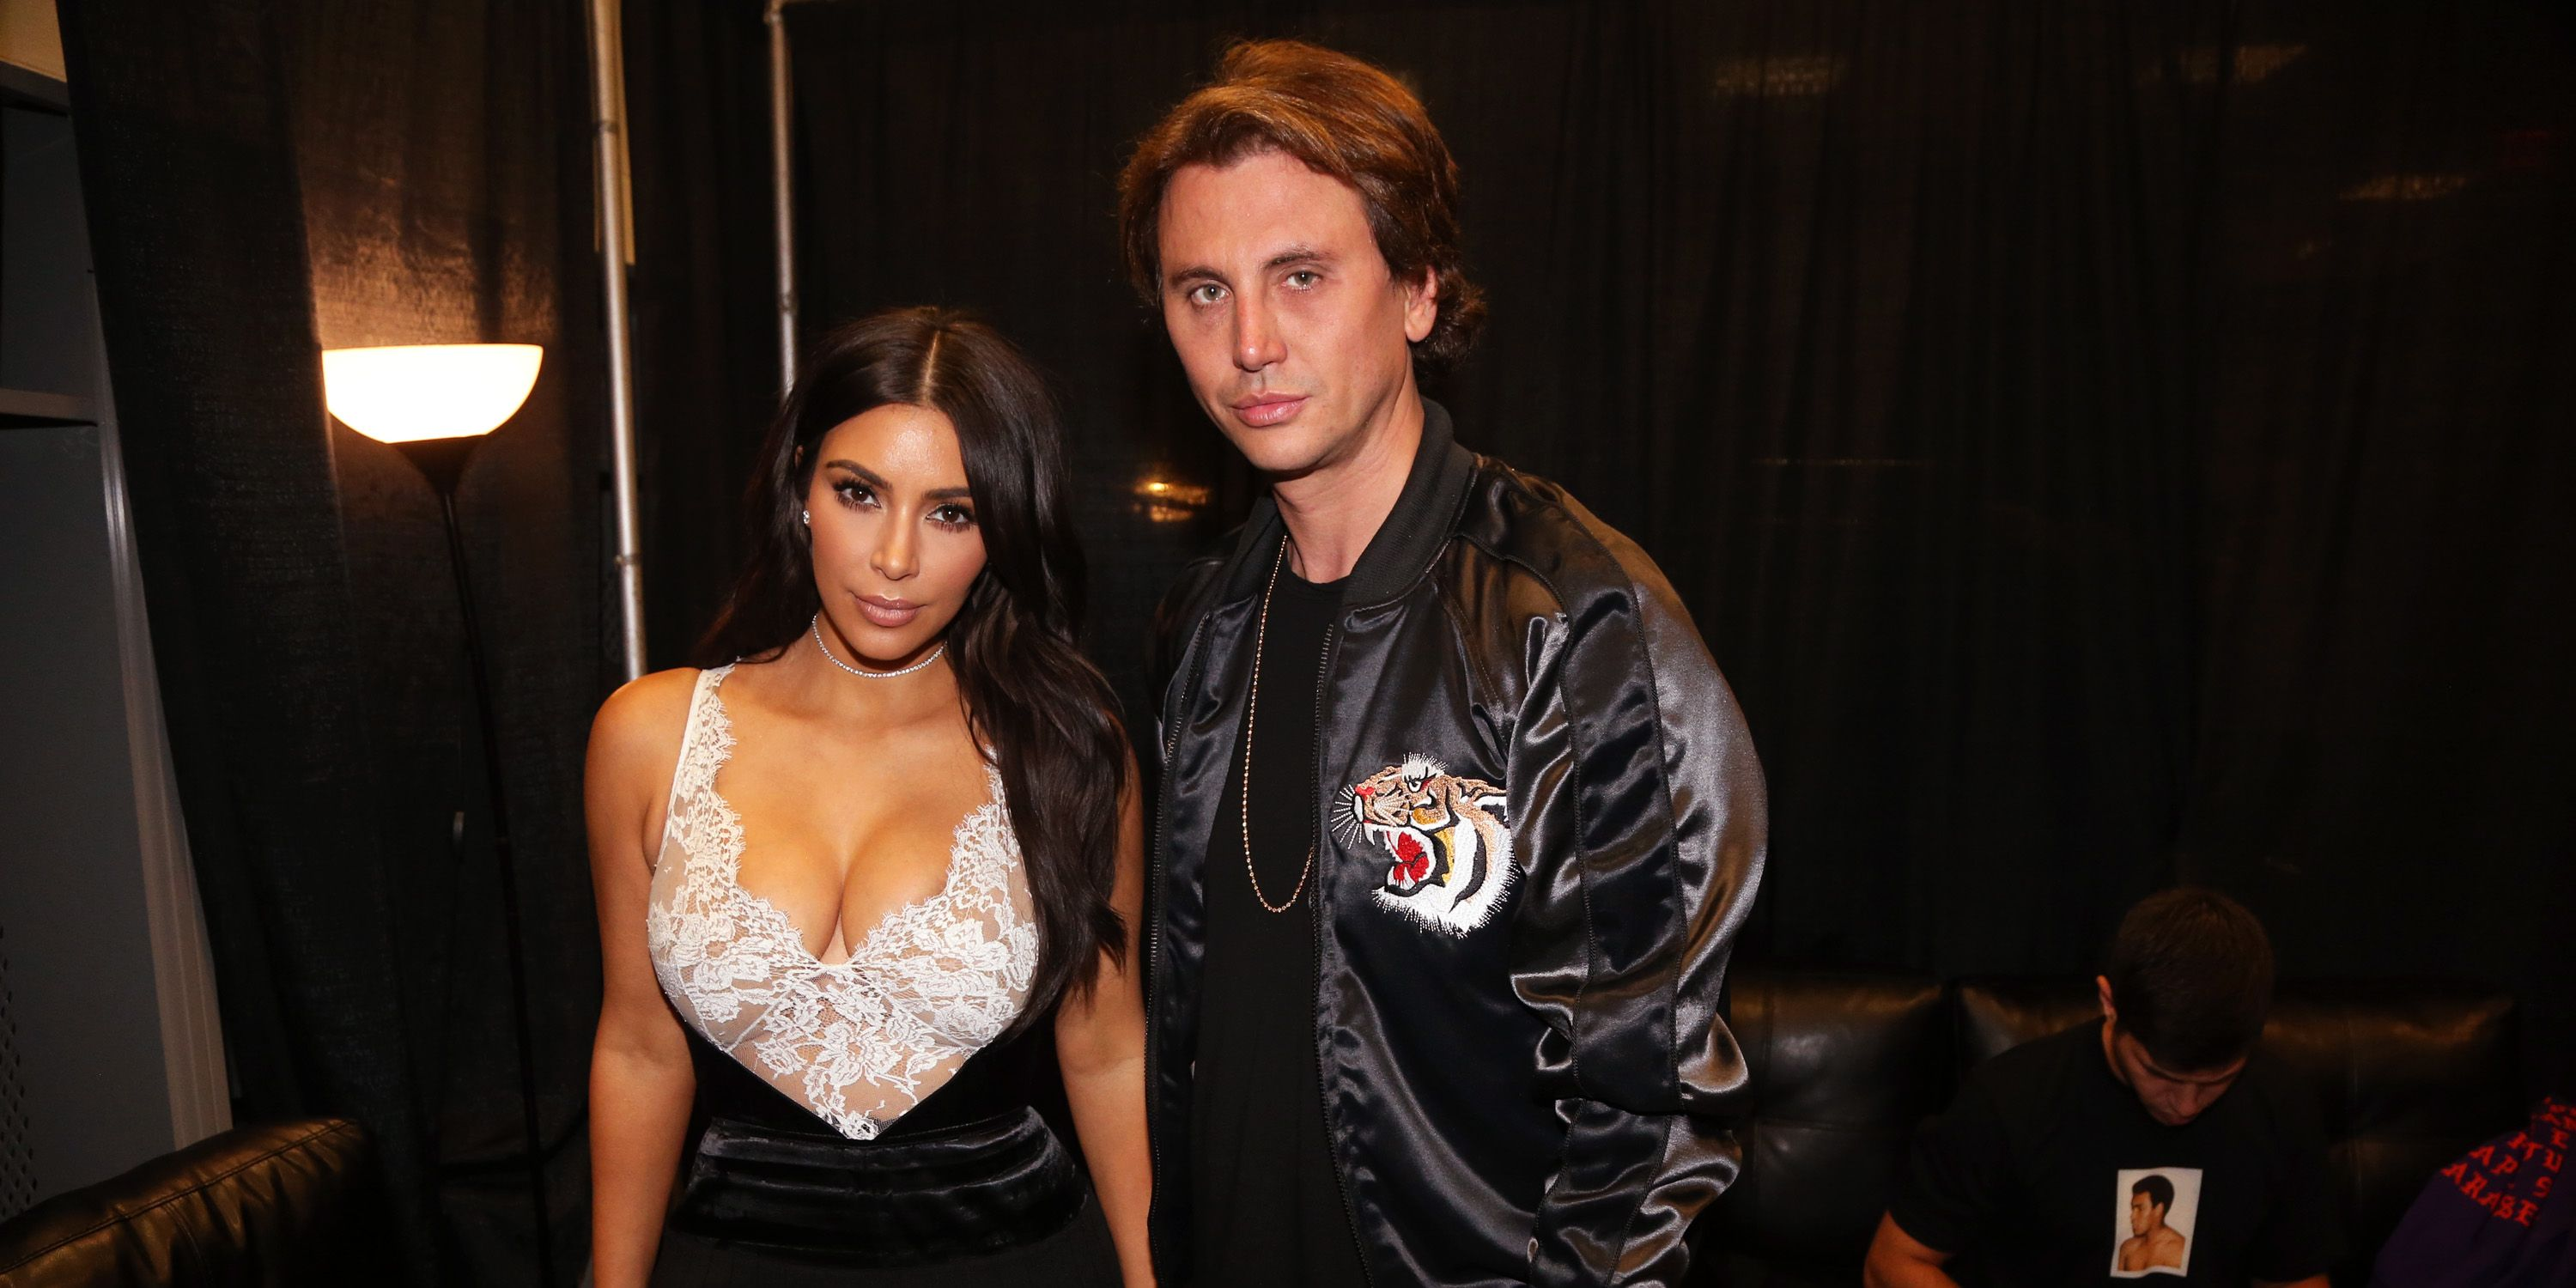 Here's What Kim Kardashian's BFF Jonathan Cheban Thinks About Those Twin Rumours